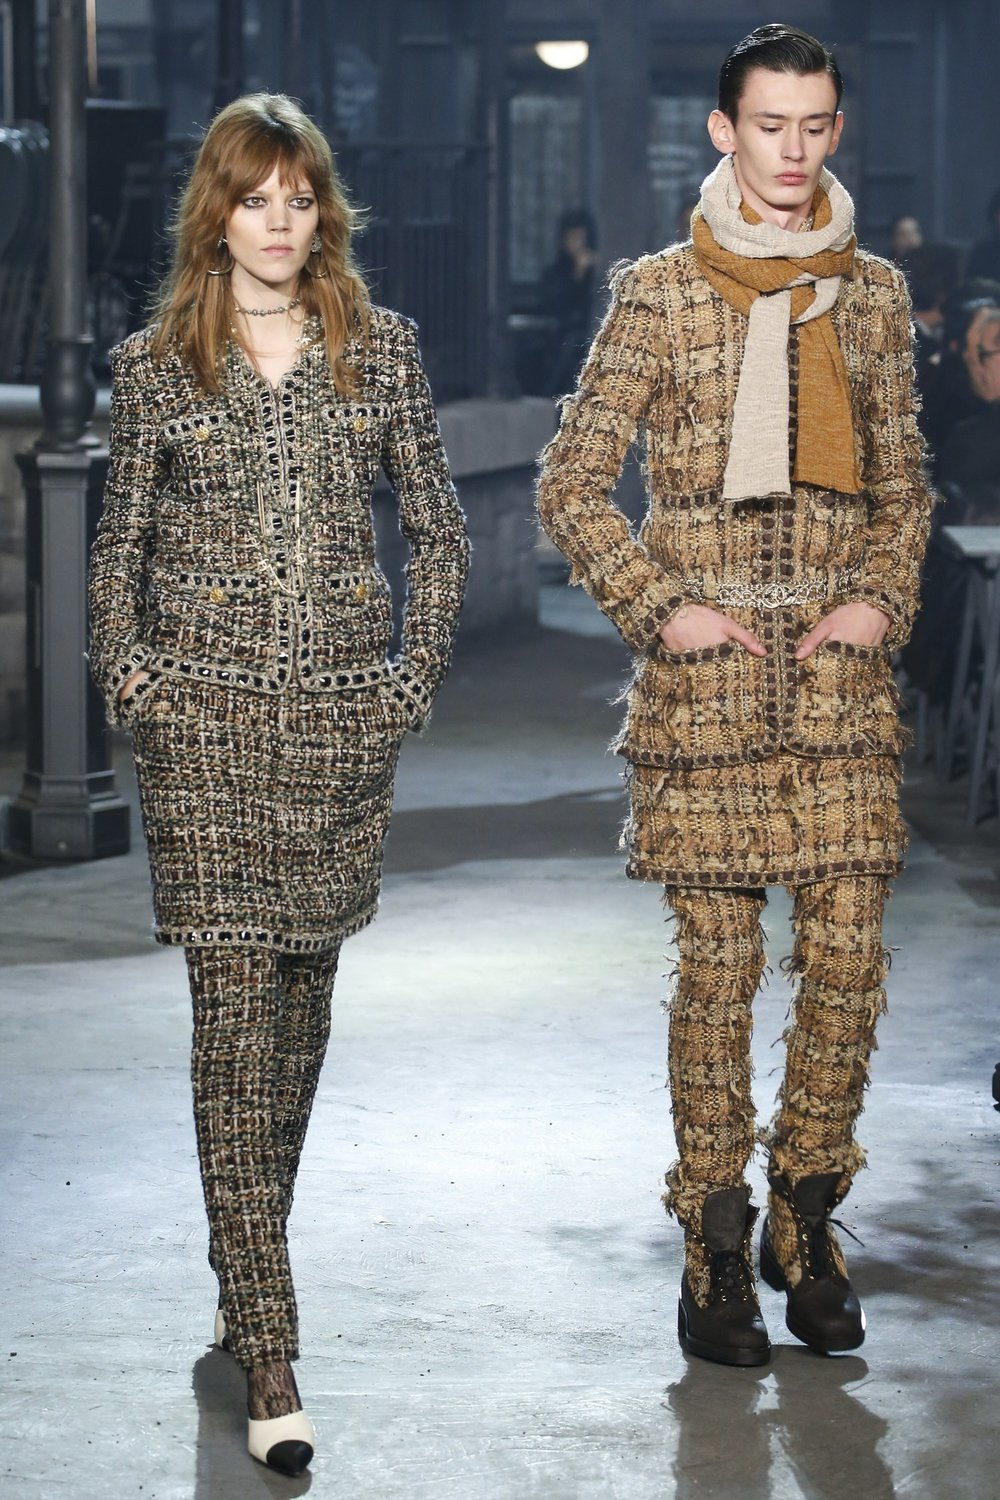 Models walk down the runway in tweed clothing from the Chanel Pre Fall 2016 collection.